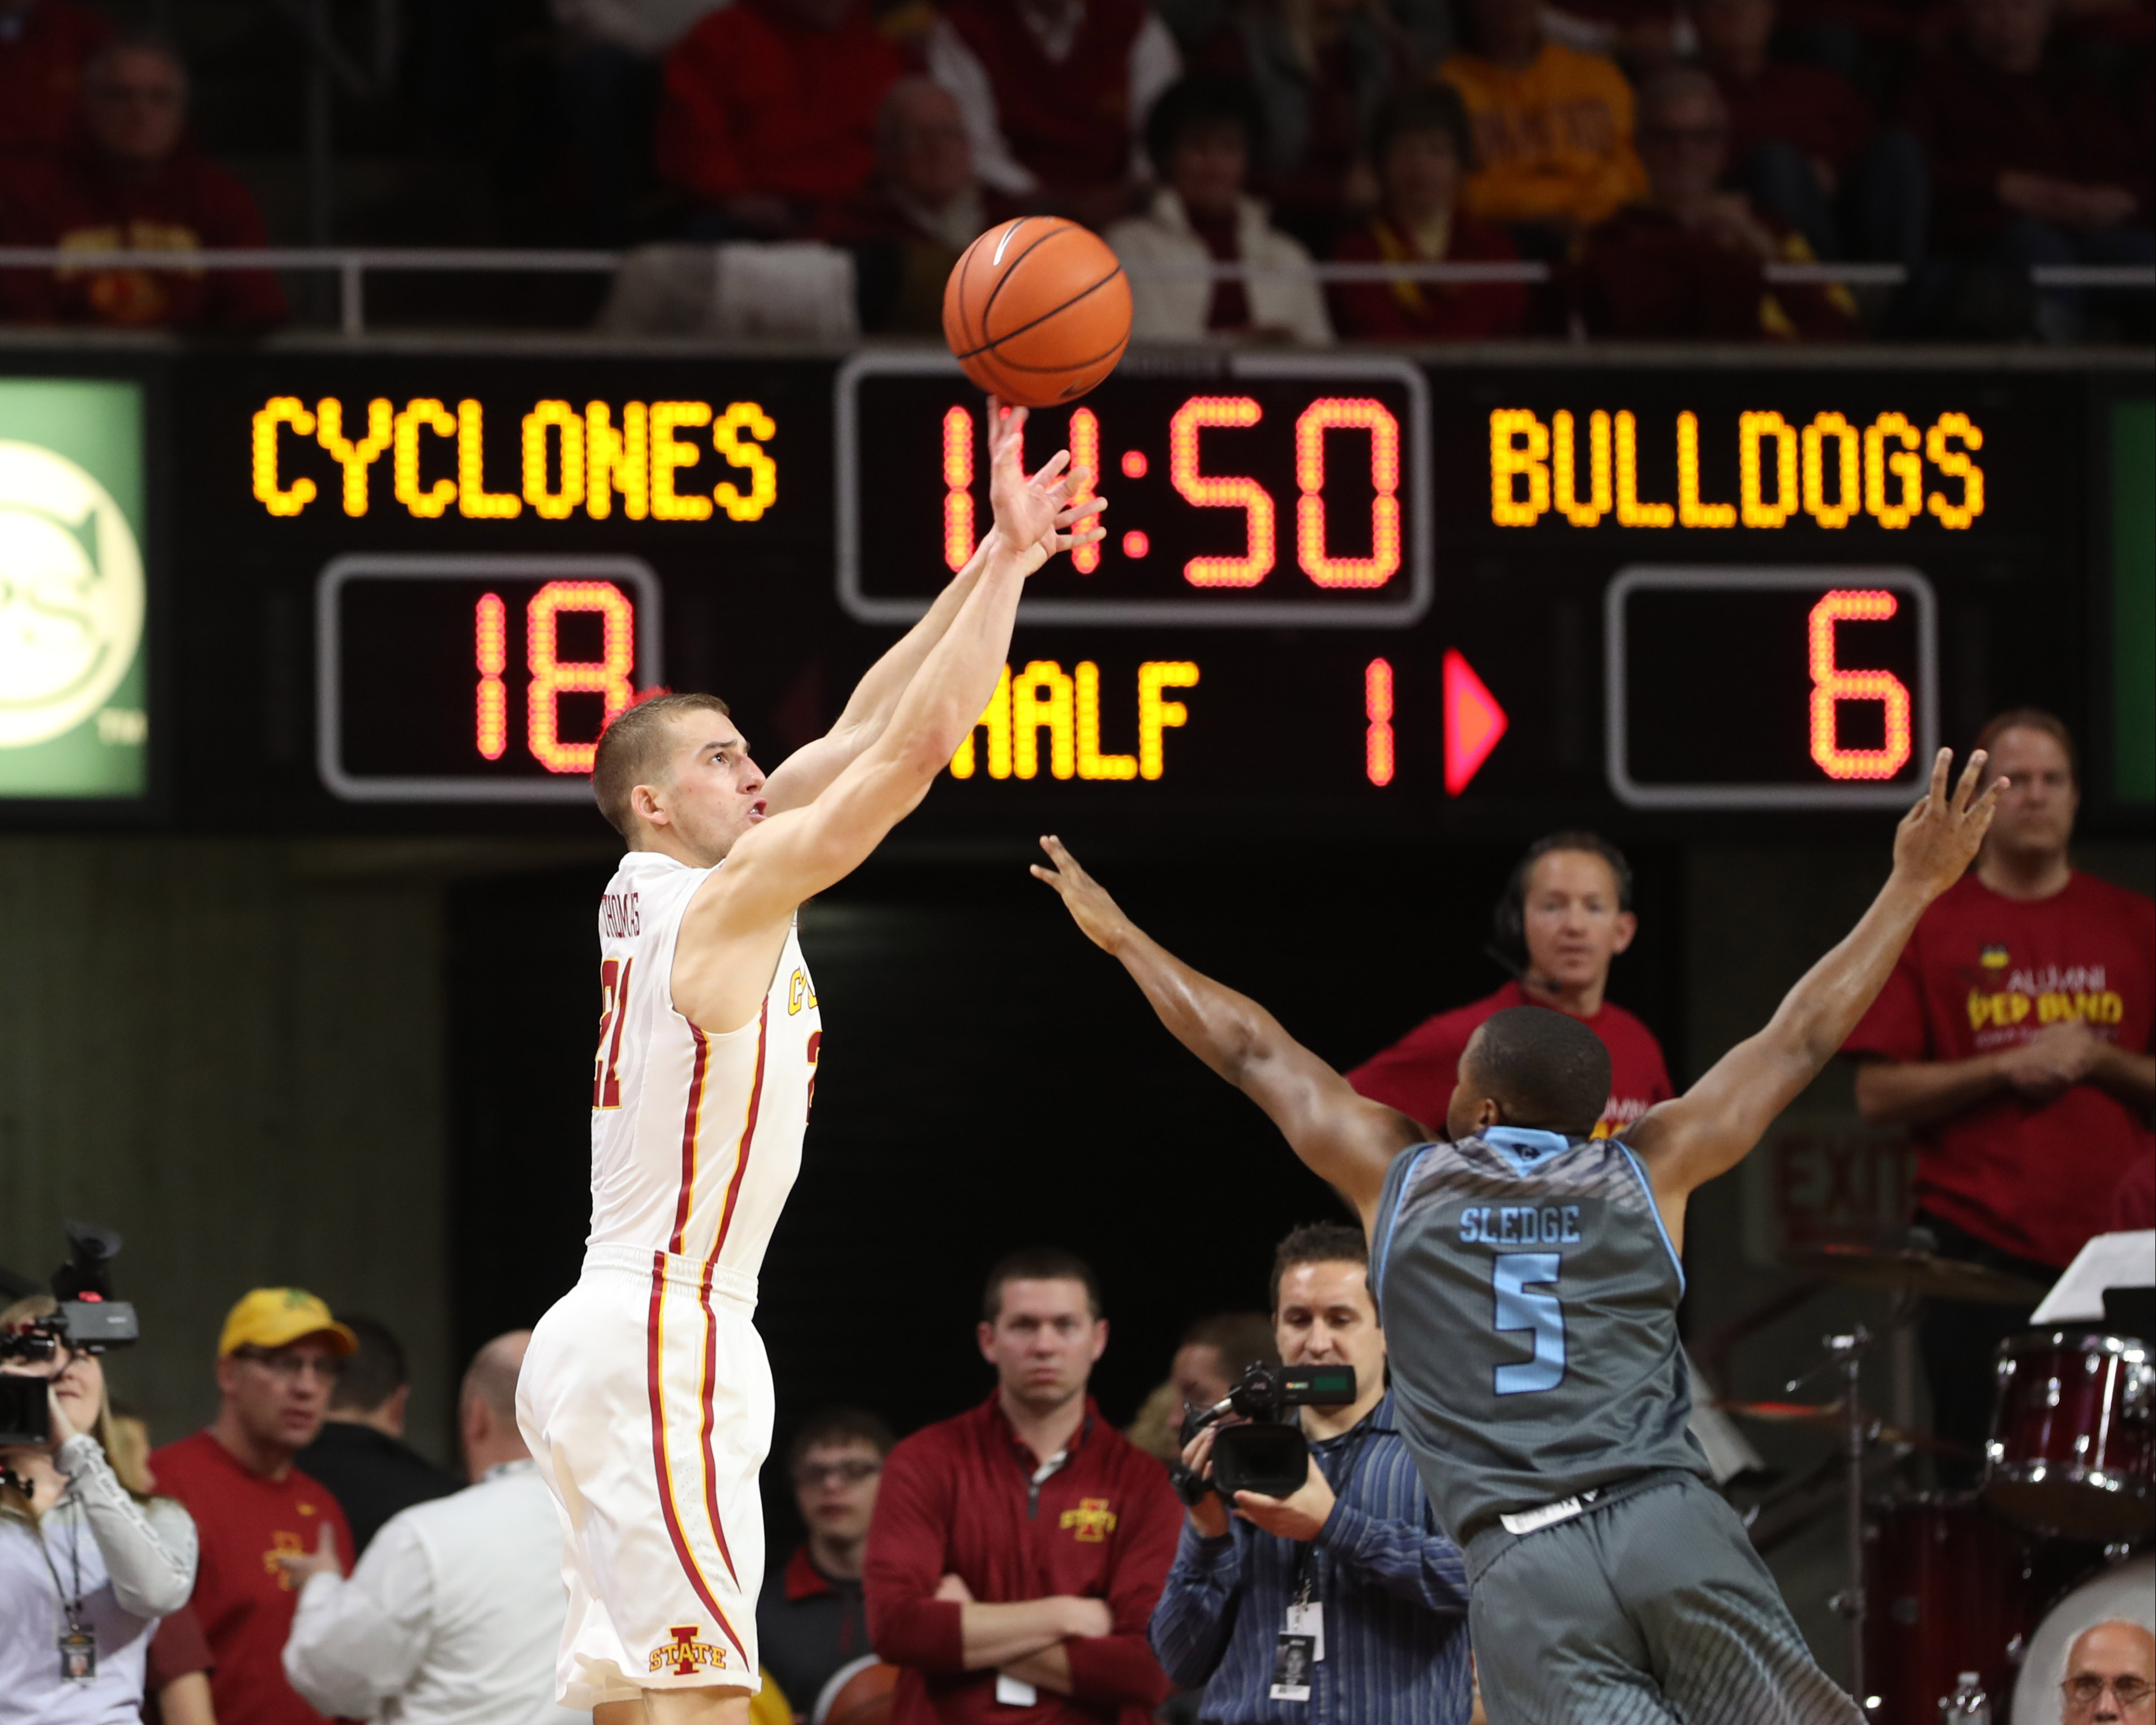 Nov 20, 2016; Ames, IA, USA; Iowa State Cyclones guard Matt Thomas (21) shoots a three pointer over Citadel Bulldogs guard Warren Sledge (5) at James H. Hilton Coliseum. Mandatory Credit: Reese Strickland-USA TODAY Sports